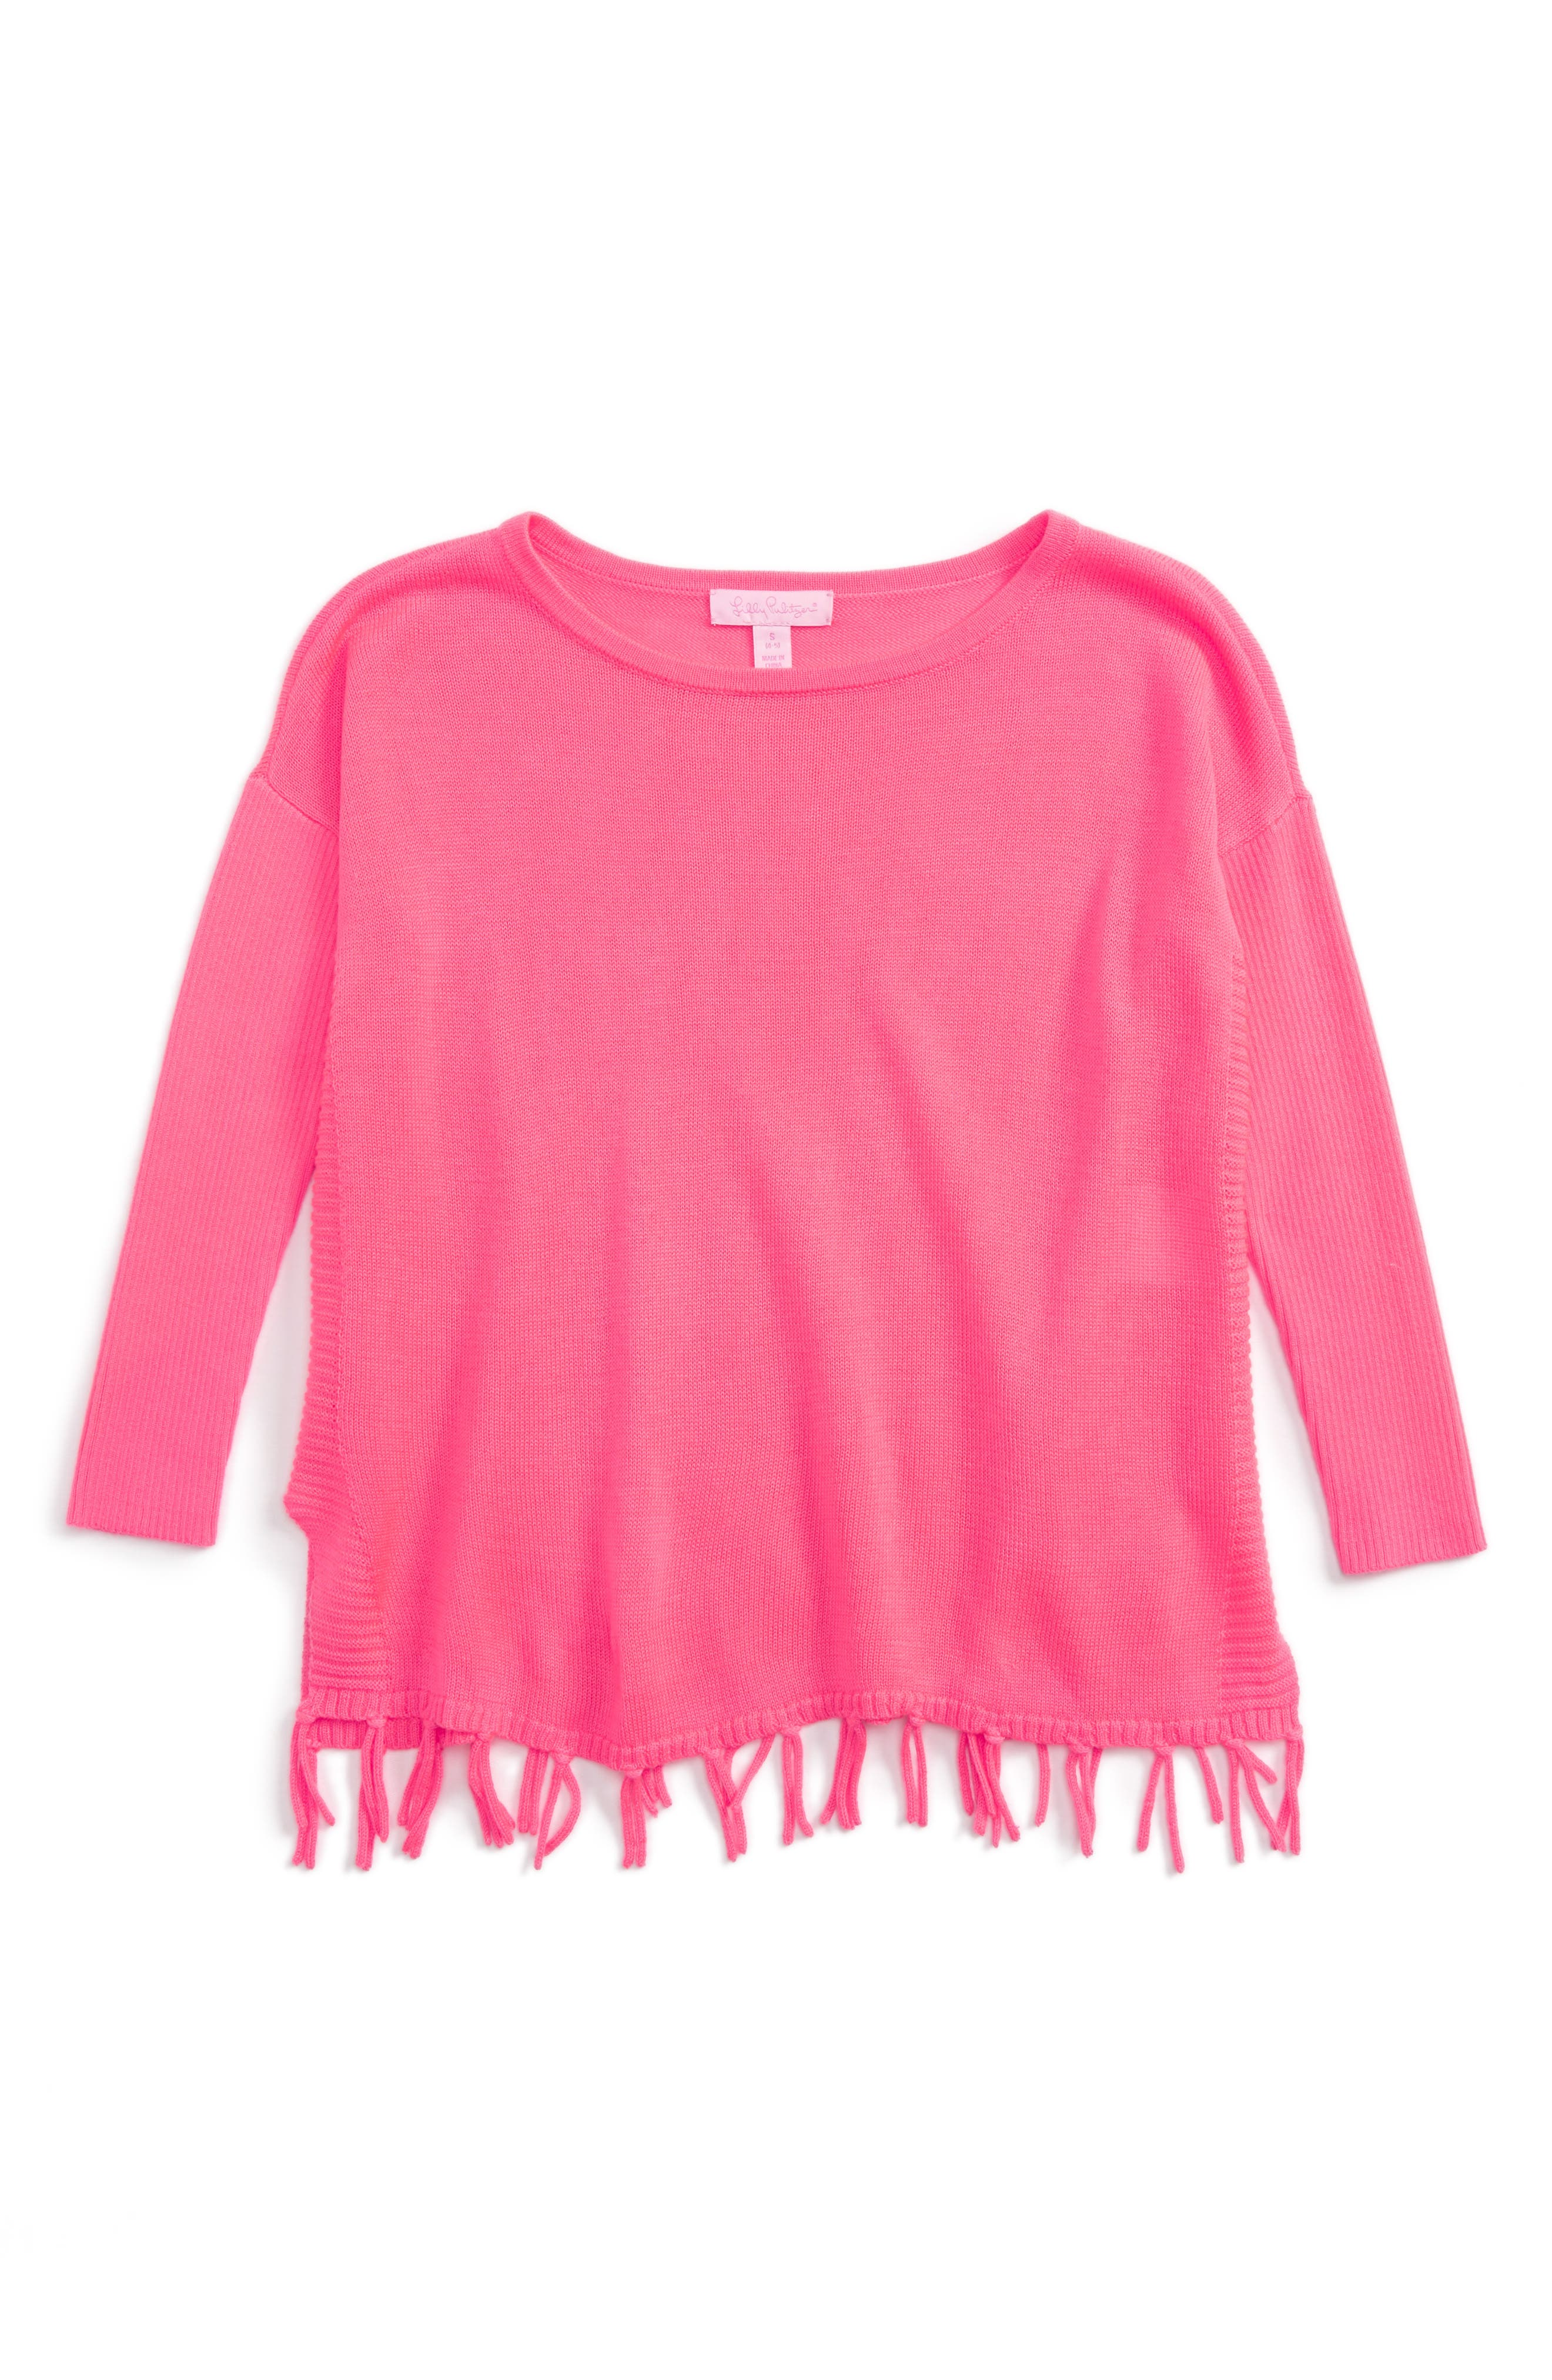 LILLY PULITZER<SUP>®</SUP> Lilly Pulizter<sup>®</sup> Mini Ramona Sweater